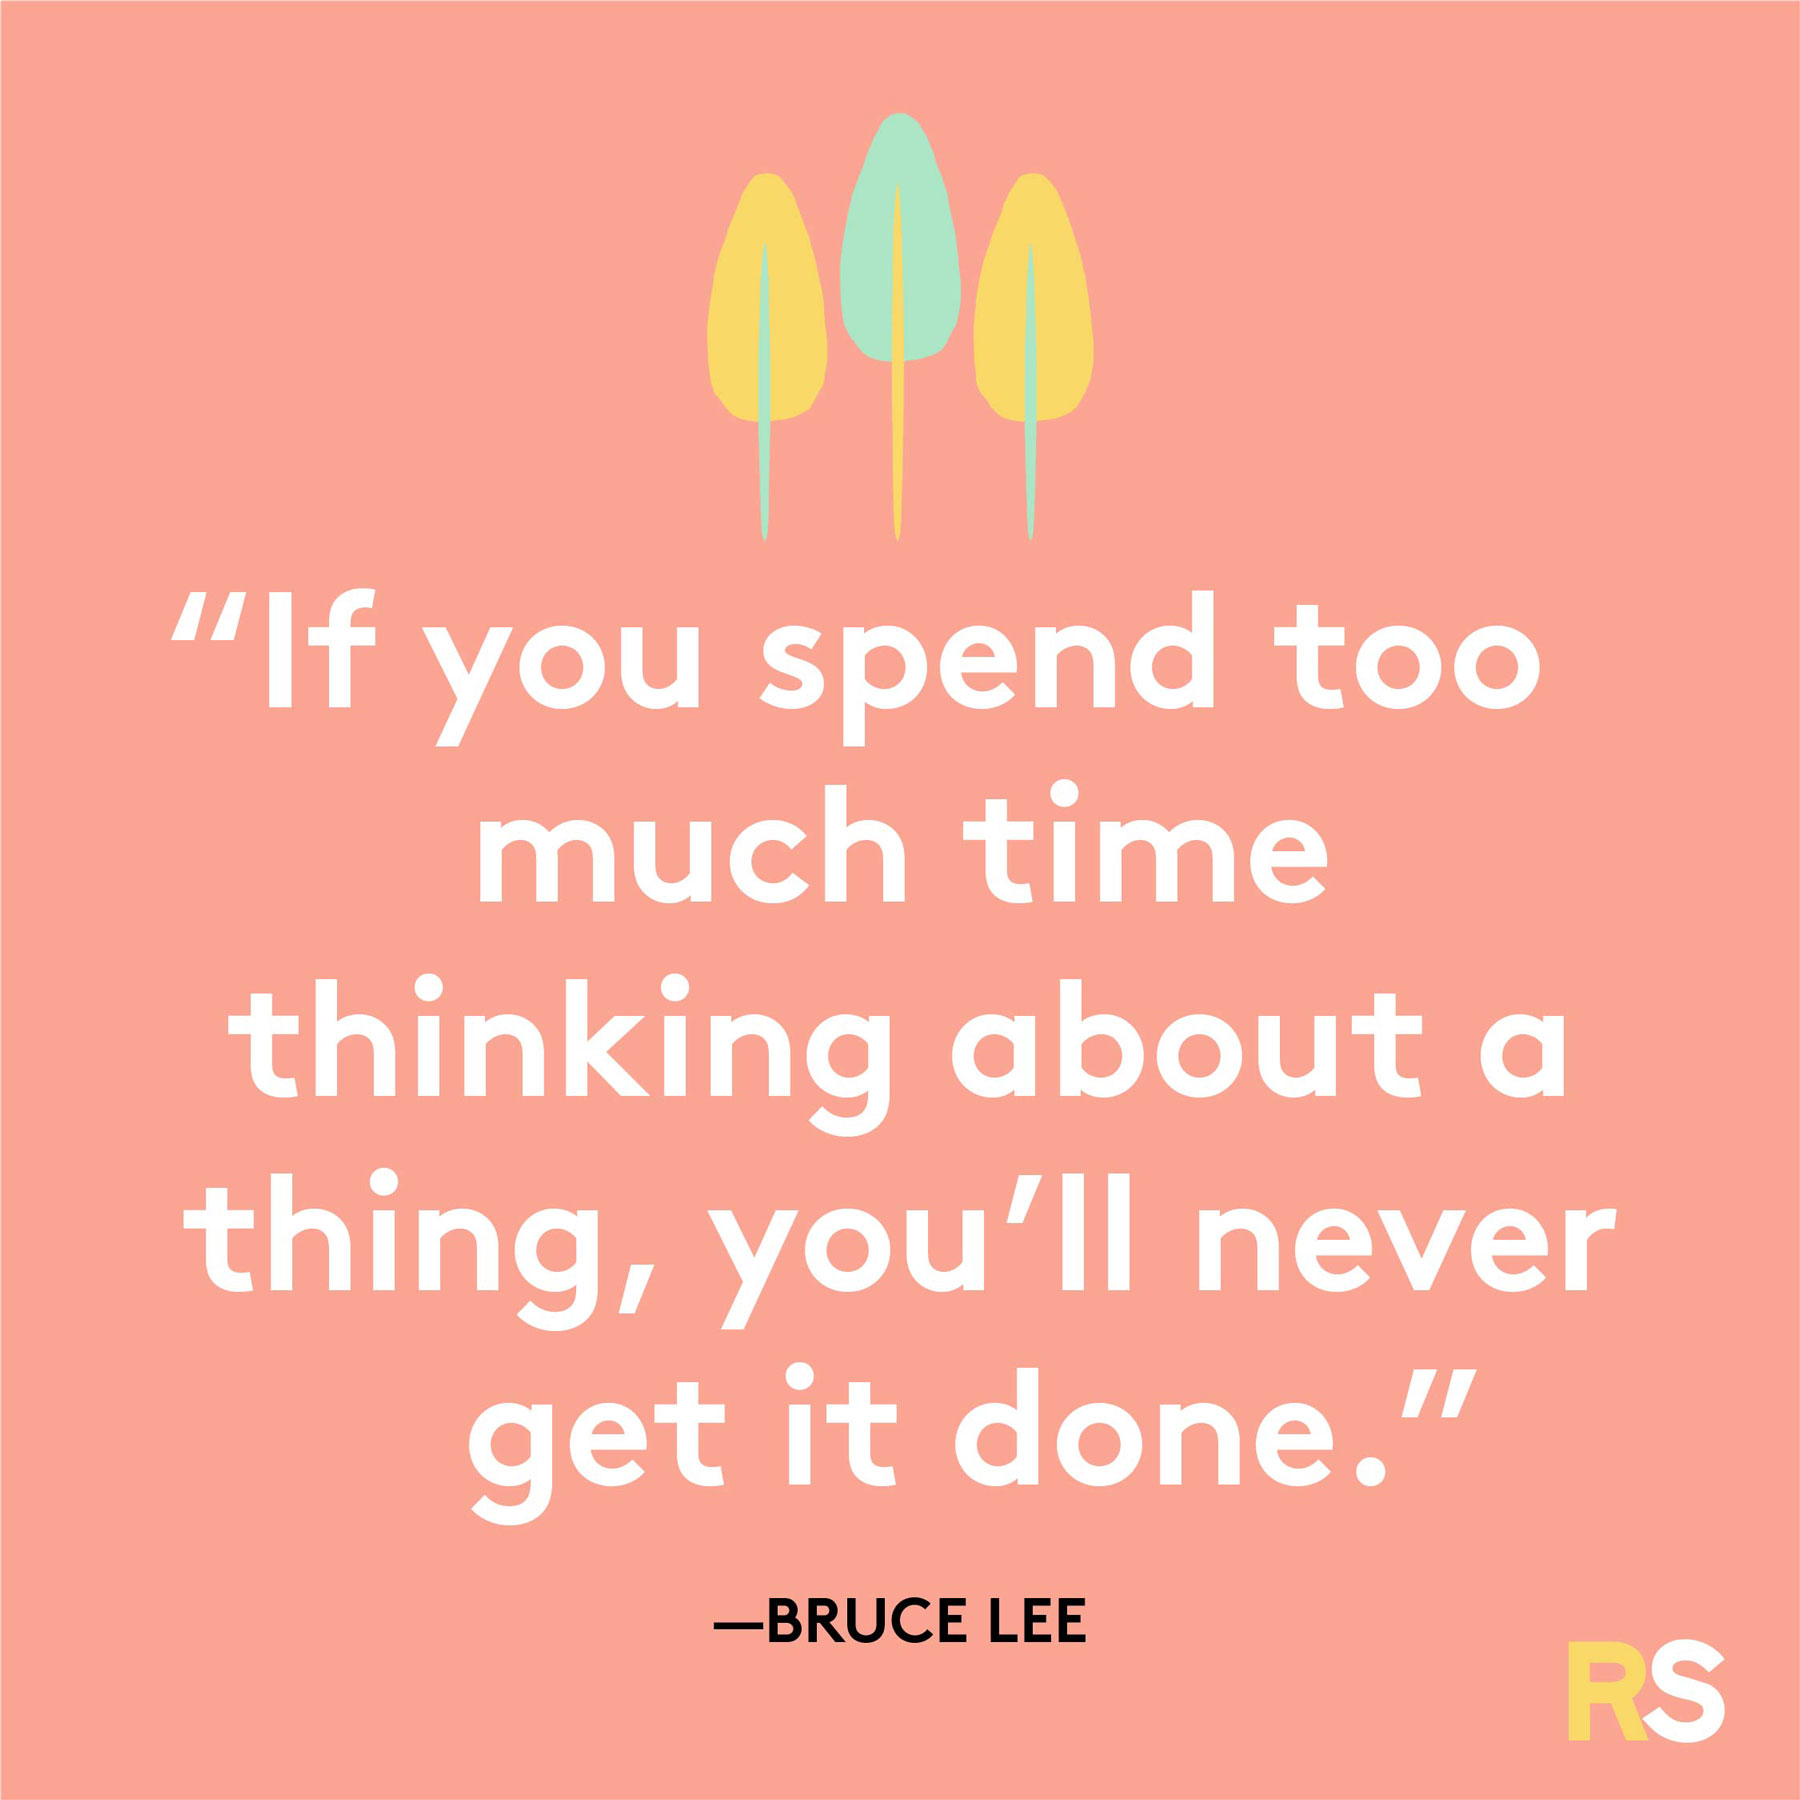 Positive motivating quotes, captions, messages – Bruce Lee quote